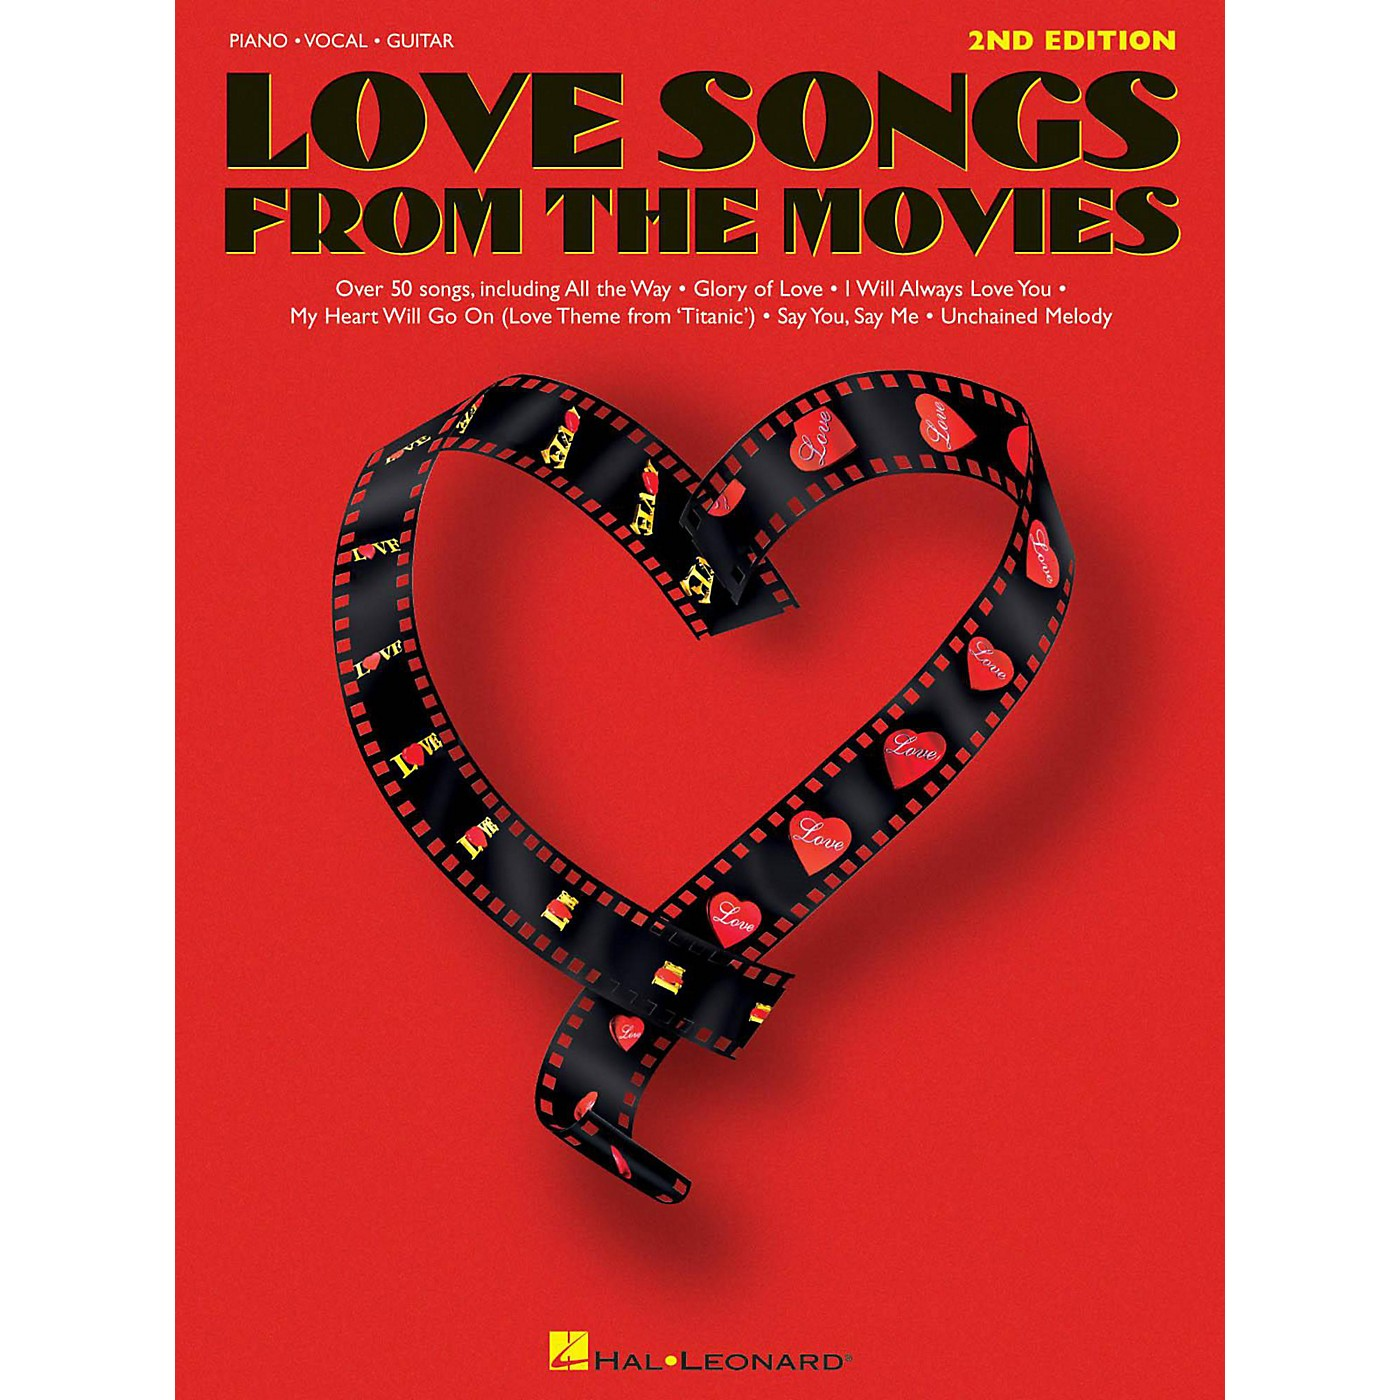 Hal Leonard Love Songs From The Movies Piano, Vocal, Guitar Songbook thumbnail